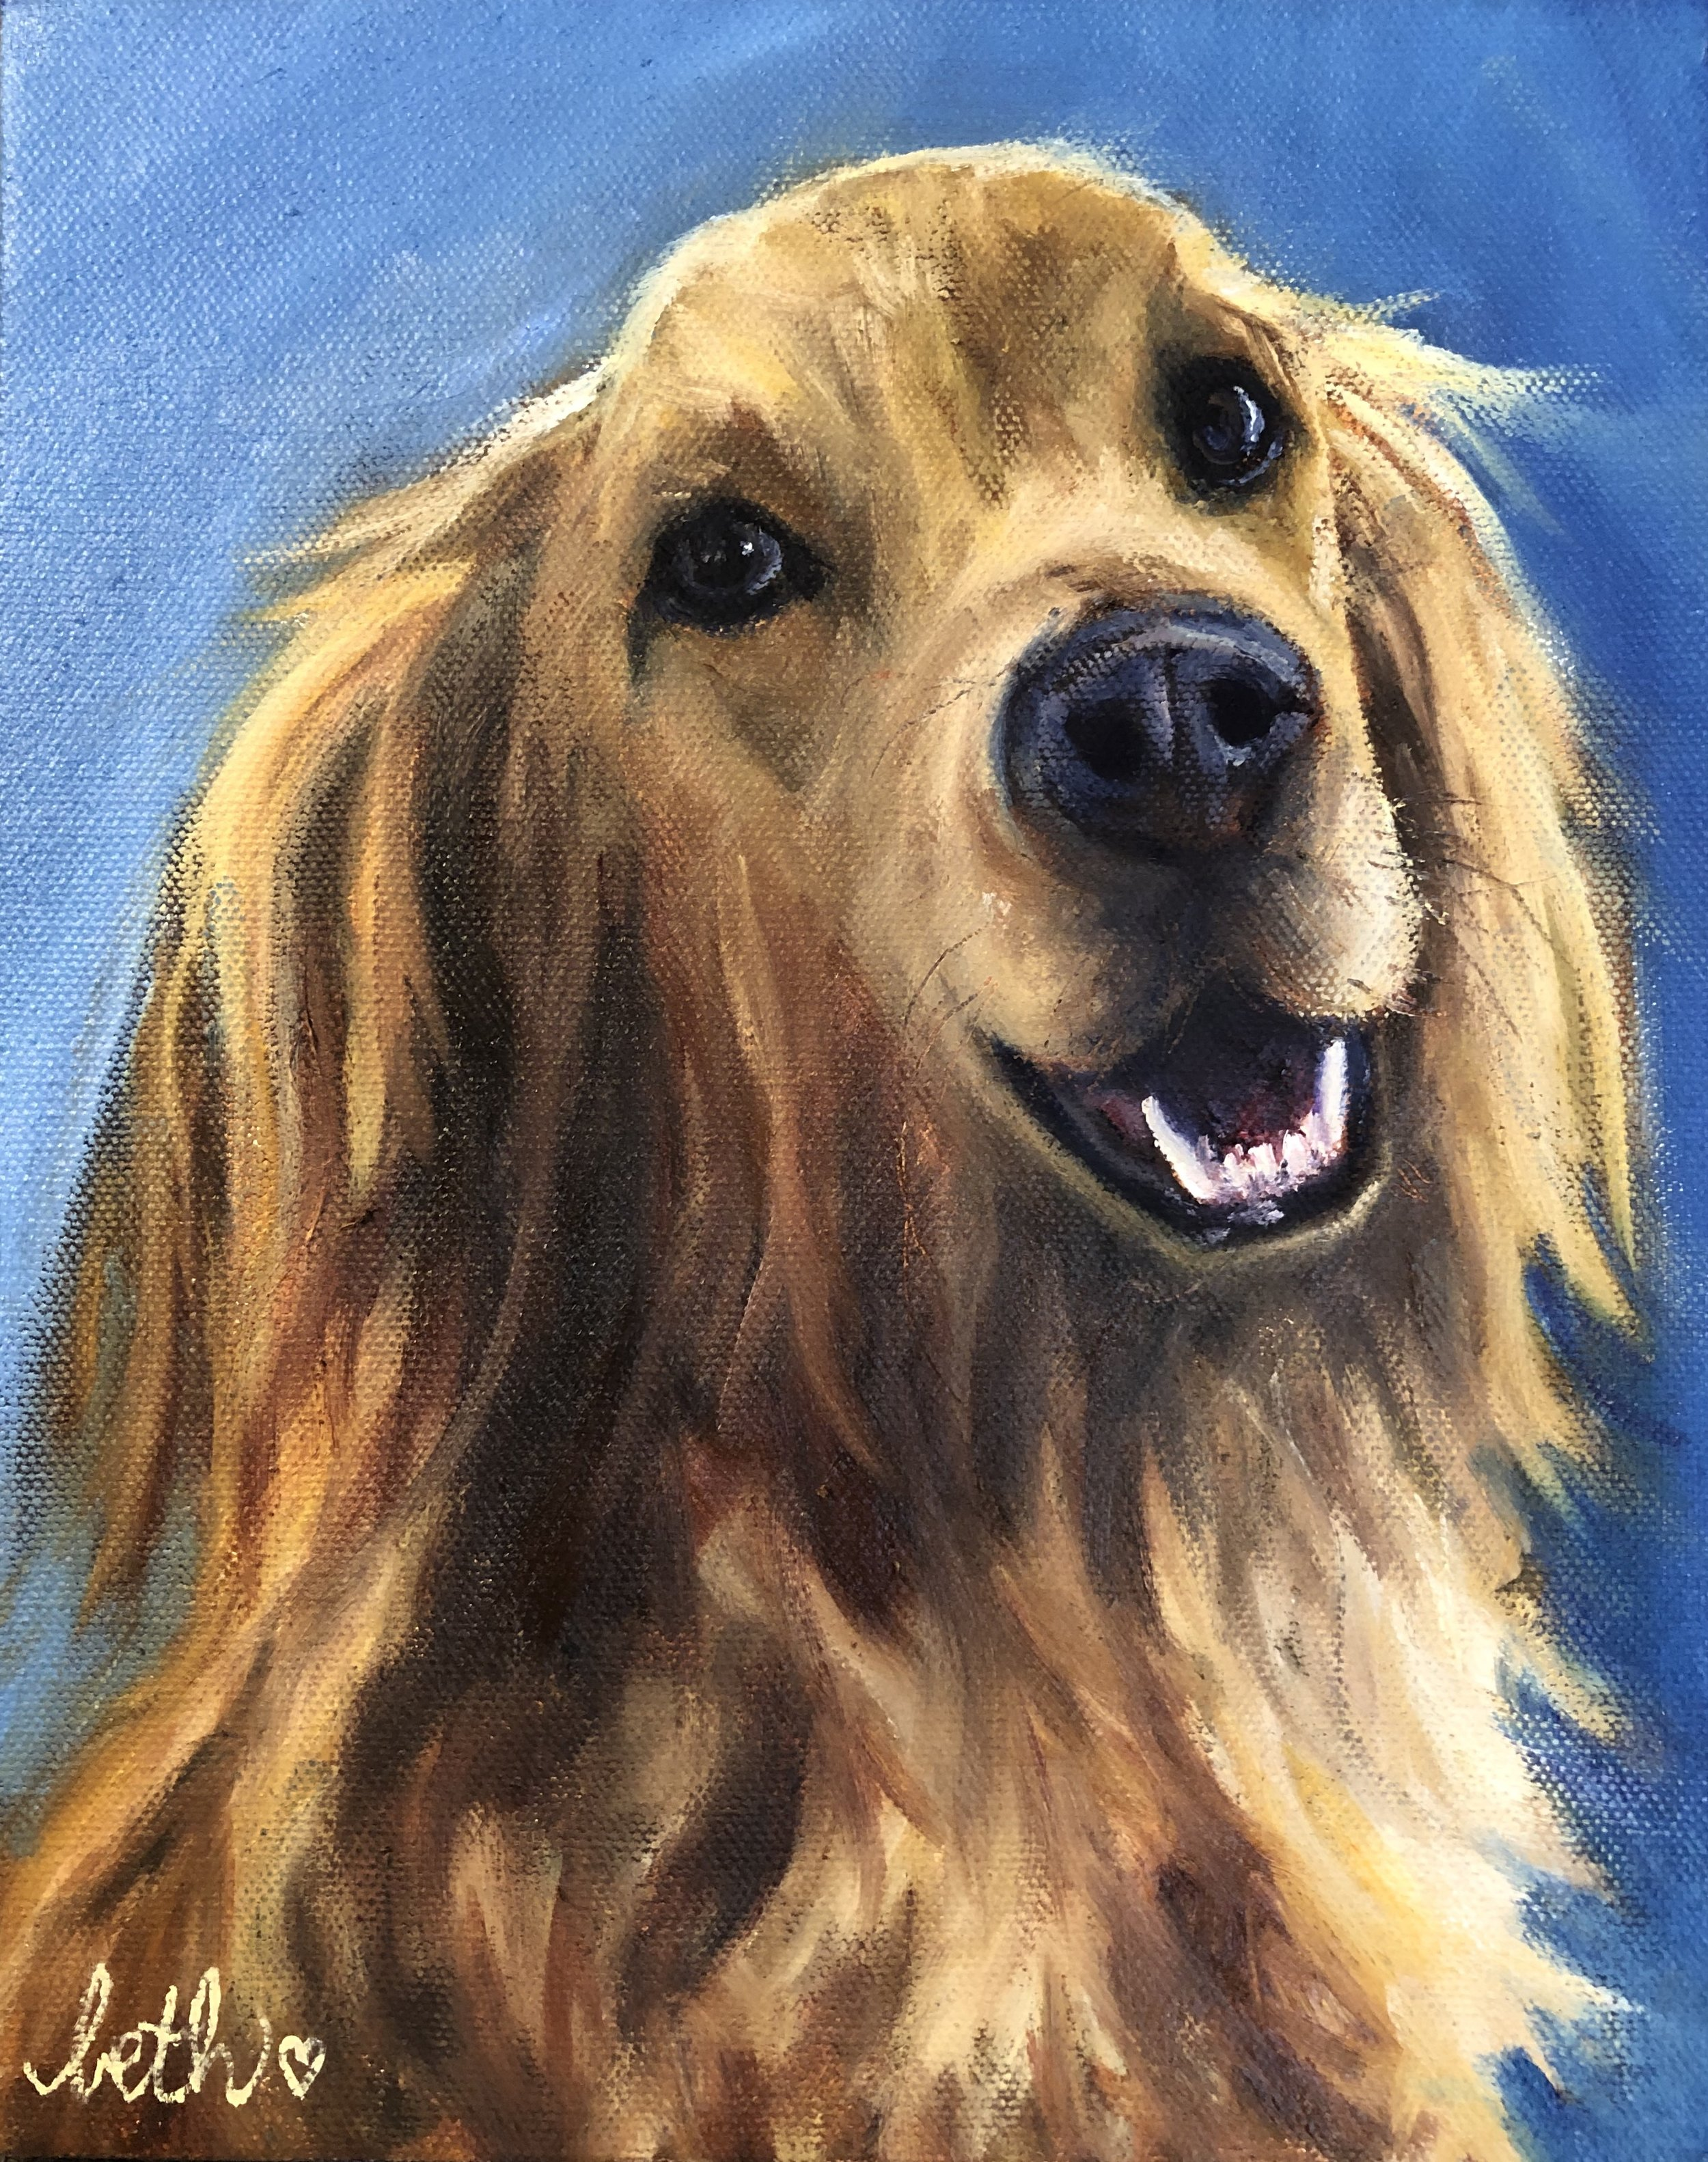 Pet portraits - Custom pet portraits available. See examples of previous commissions by clicking below.